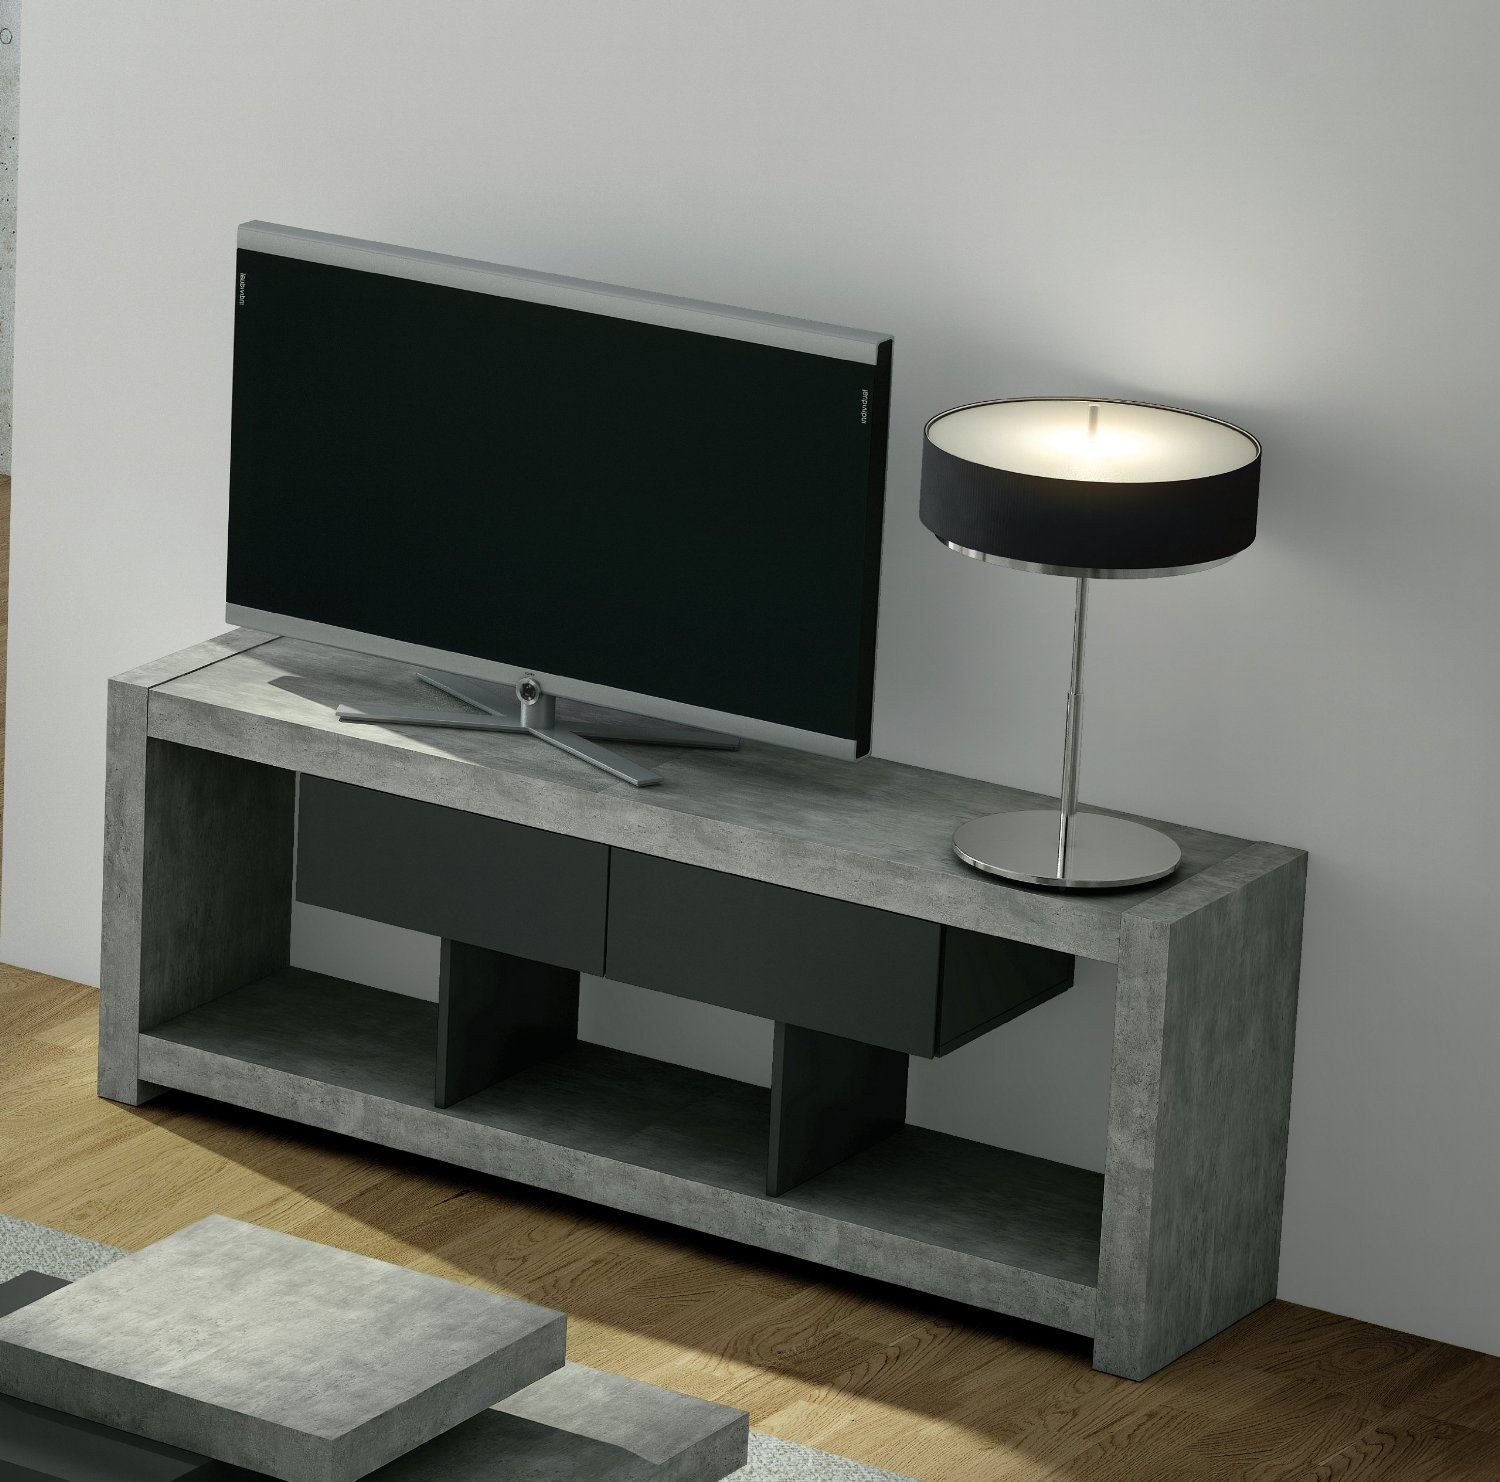 Tall Tv Stands for Bedroom Beautiful Temahome Concrete Tv Stand